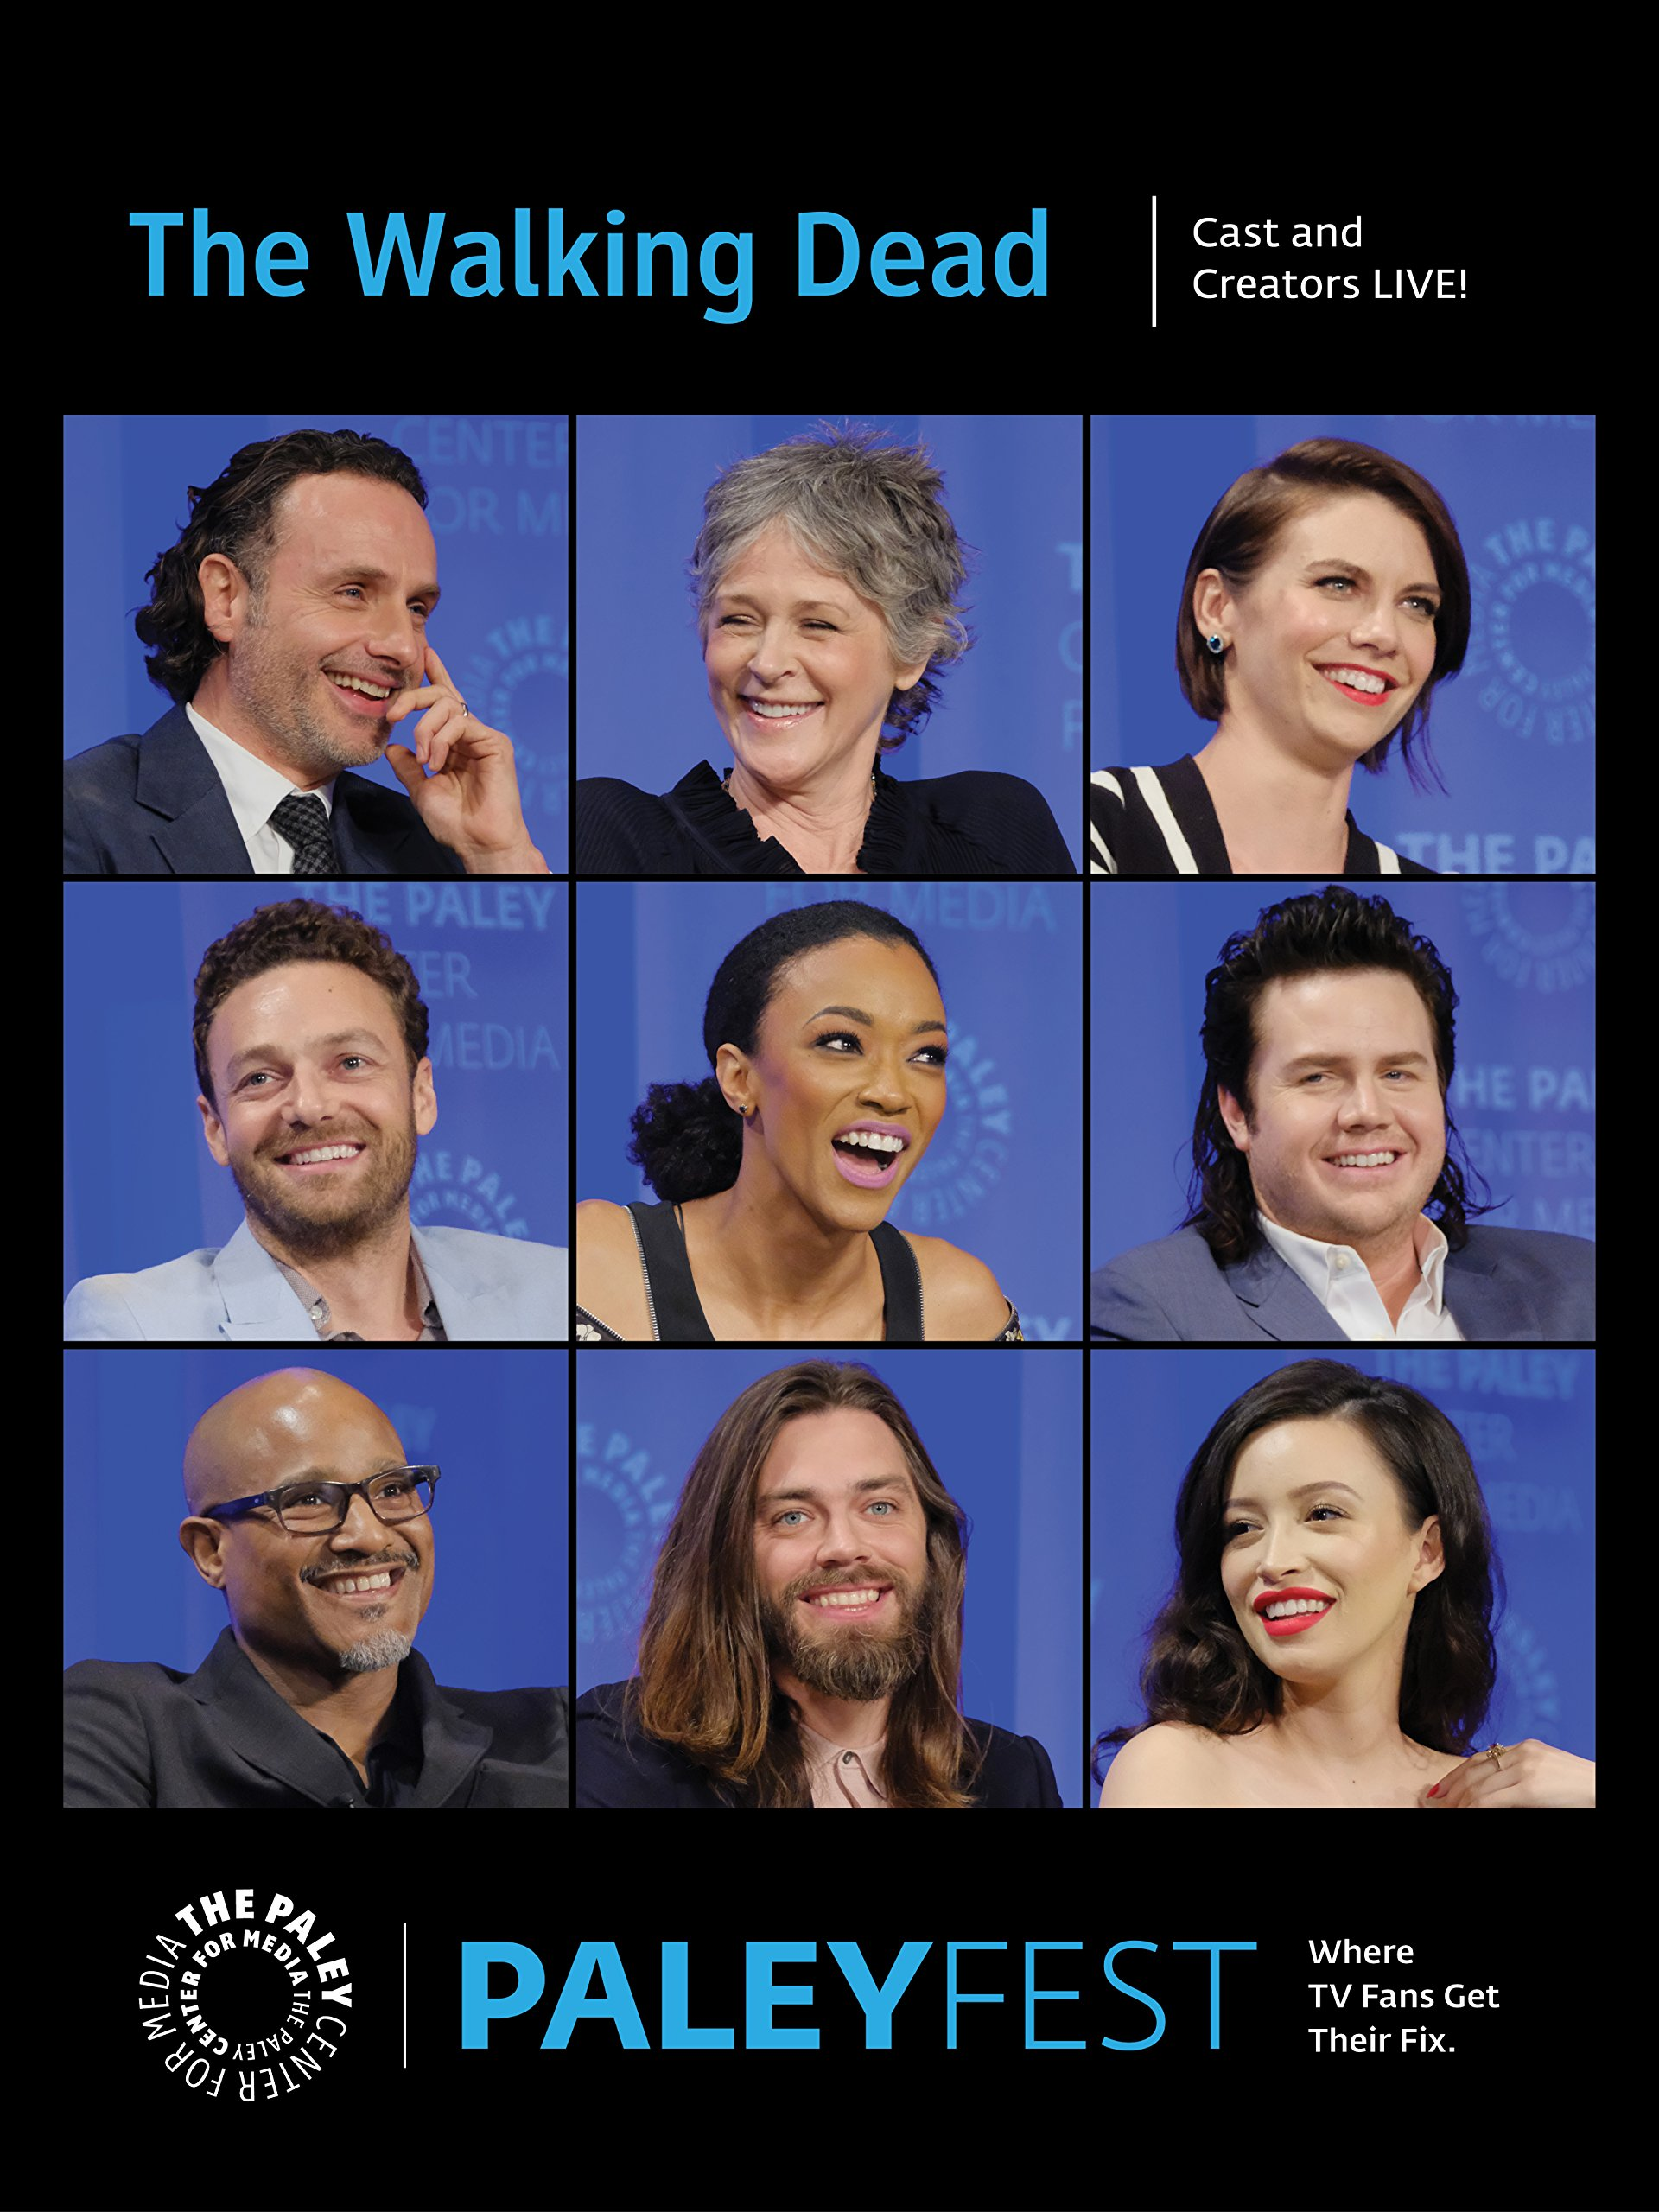 The Walking Dead: Cast and Creators PaleyFest